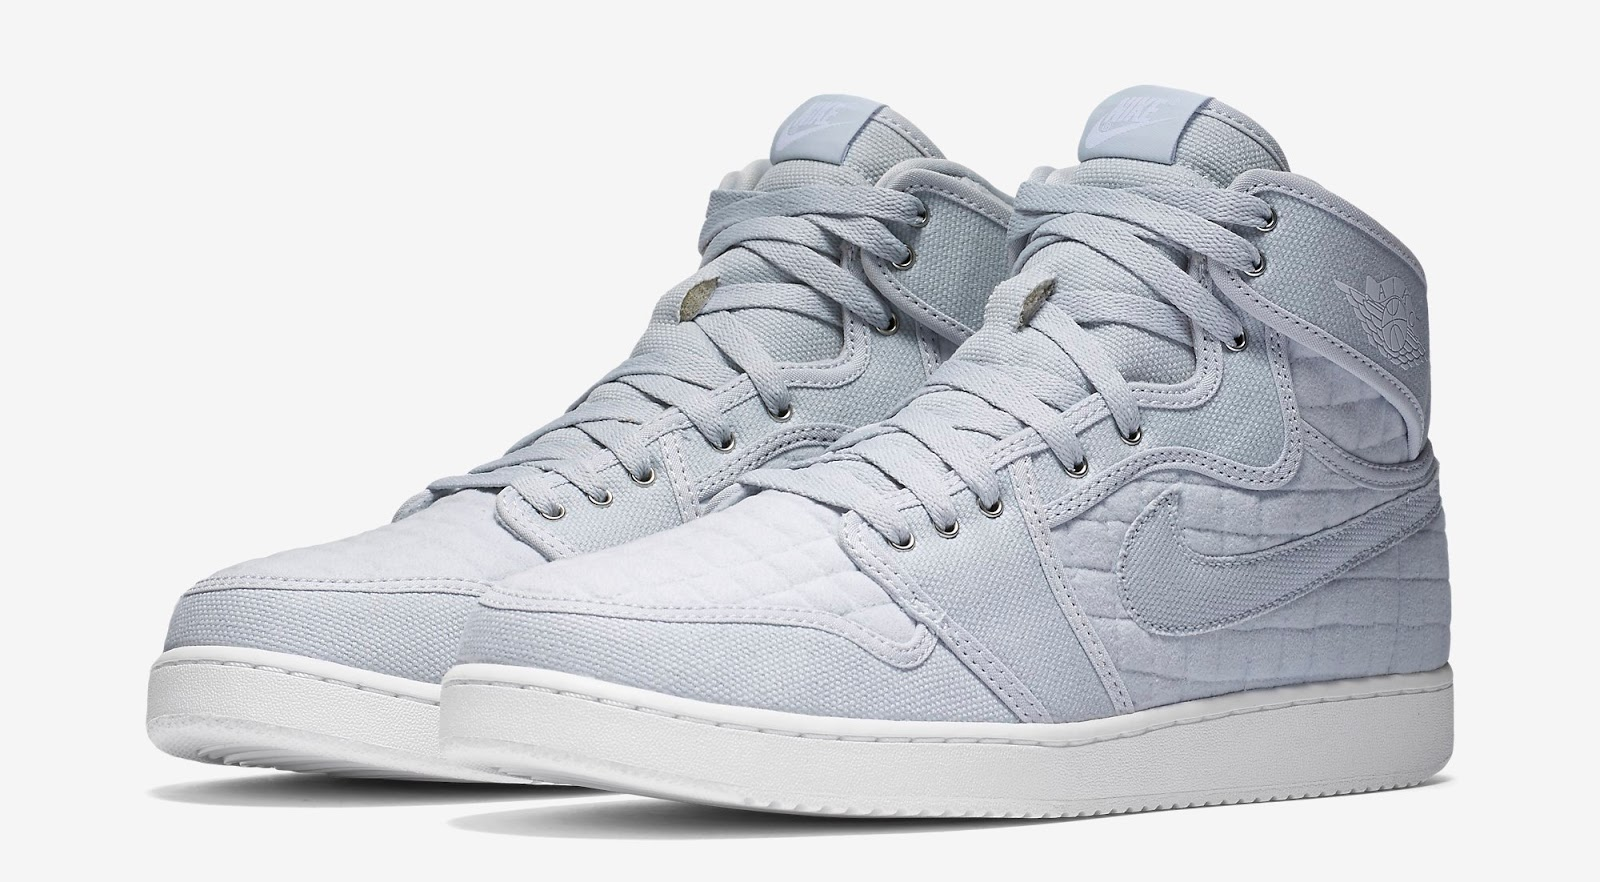 50d83b56be70 ajordanxi Your  1 Source For Sneaker Release Dates  Air Jordan 1 Retro KO  High OG Pure Platinum Metallic Silver-White Release Reminder